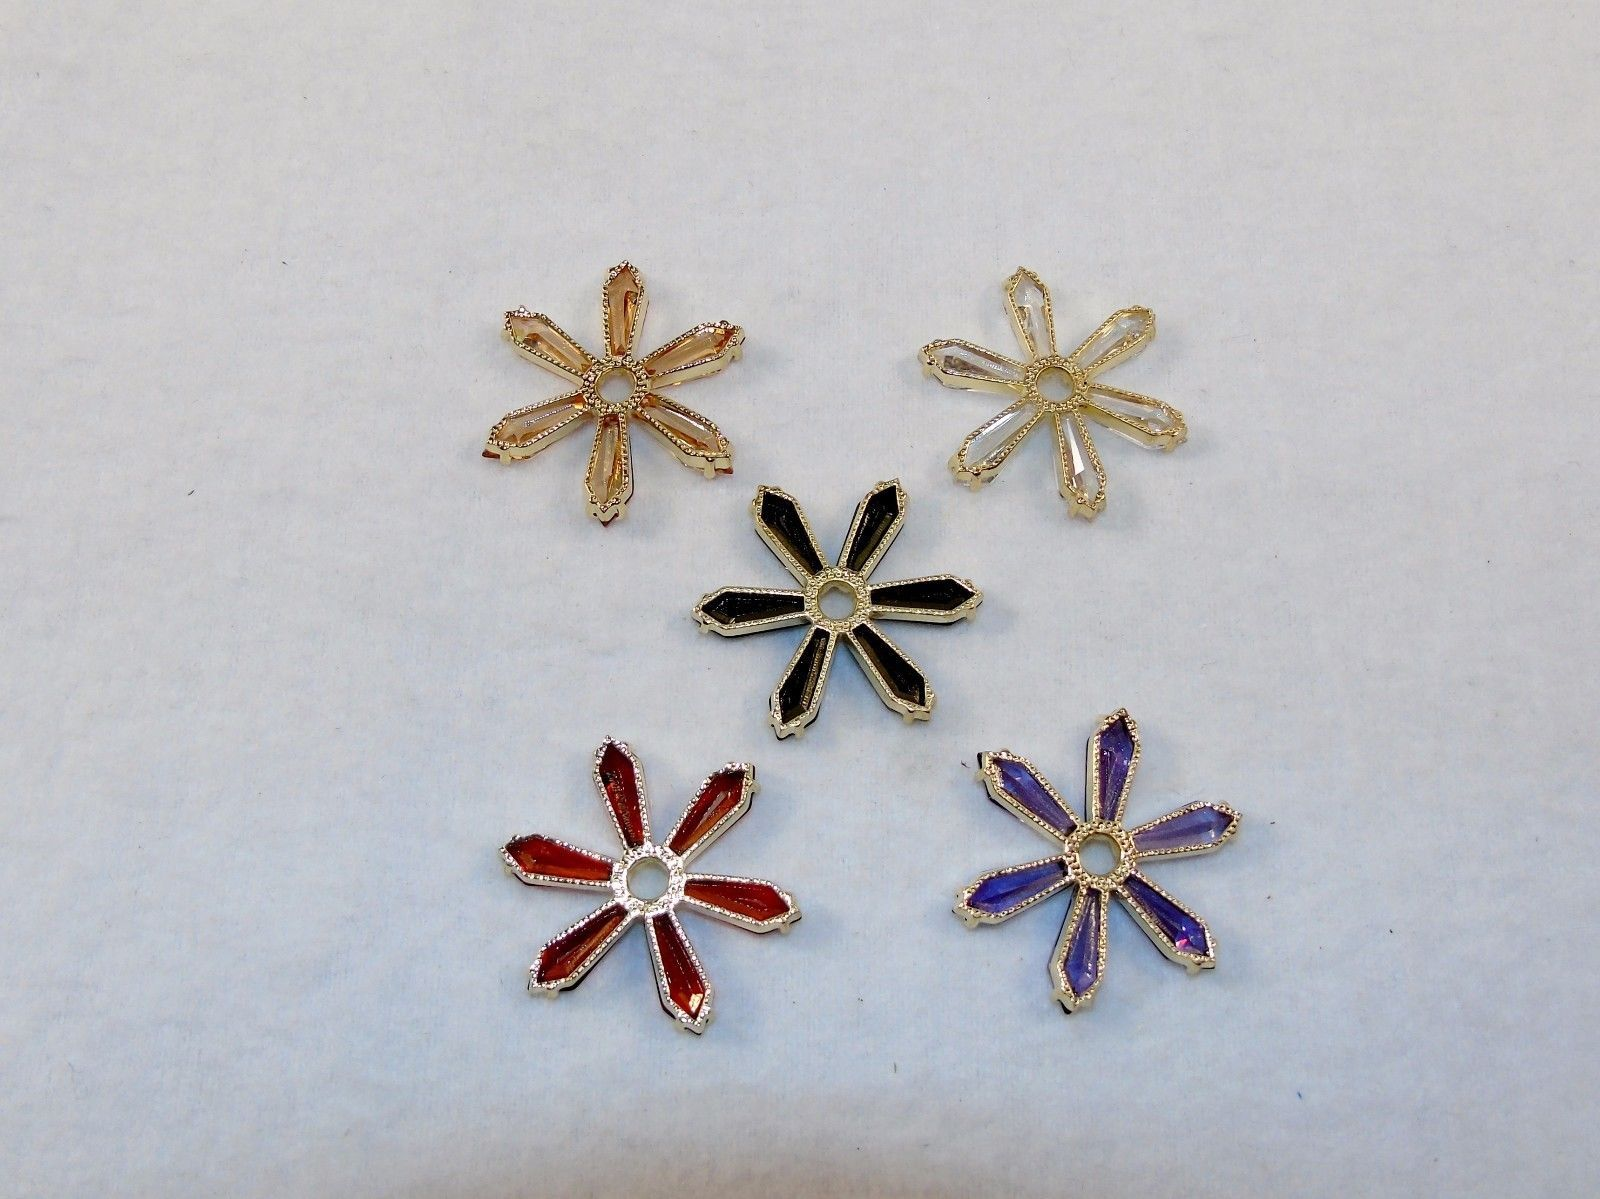 Fashion Jewelry Earrings ~ 5 Pair, 5 Colors ~ 6 Point Stars on Hoops ~ #5420190